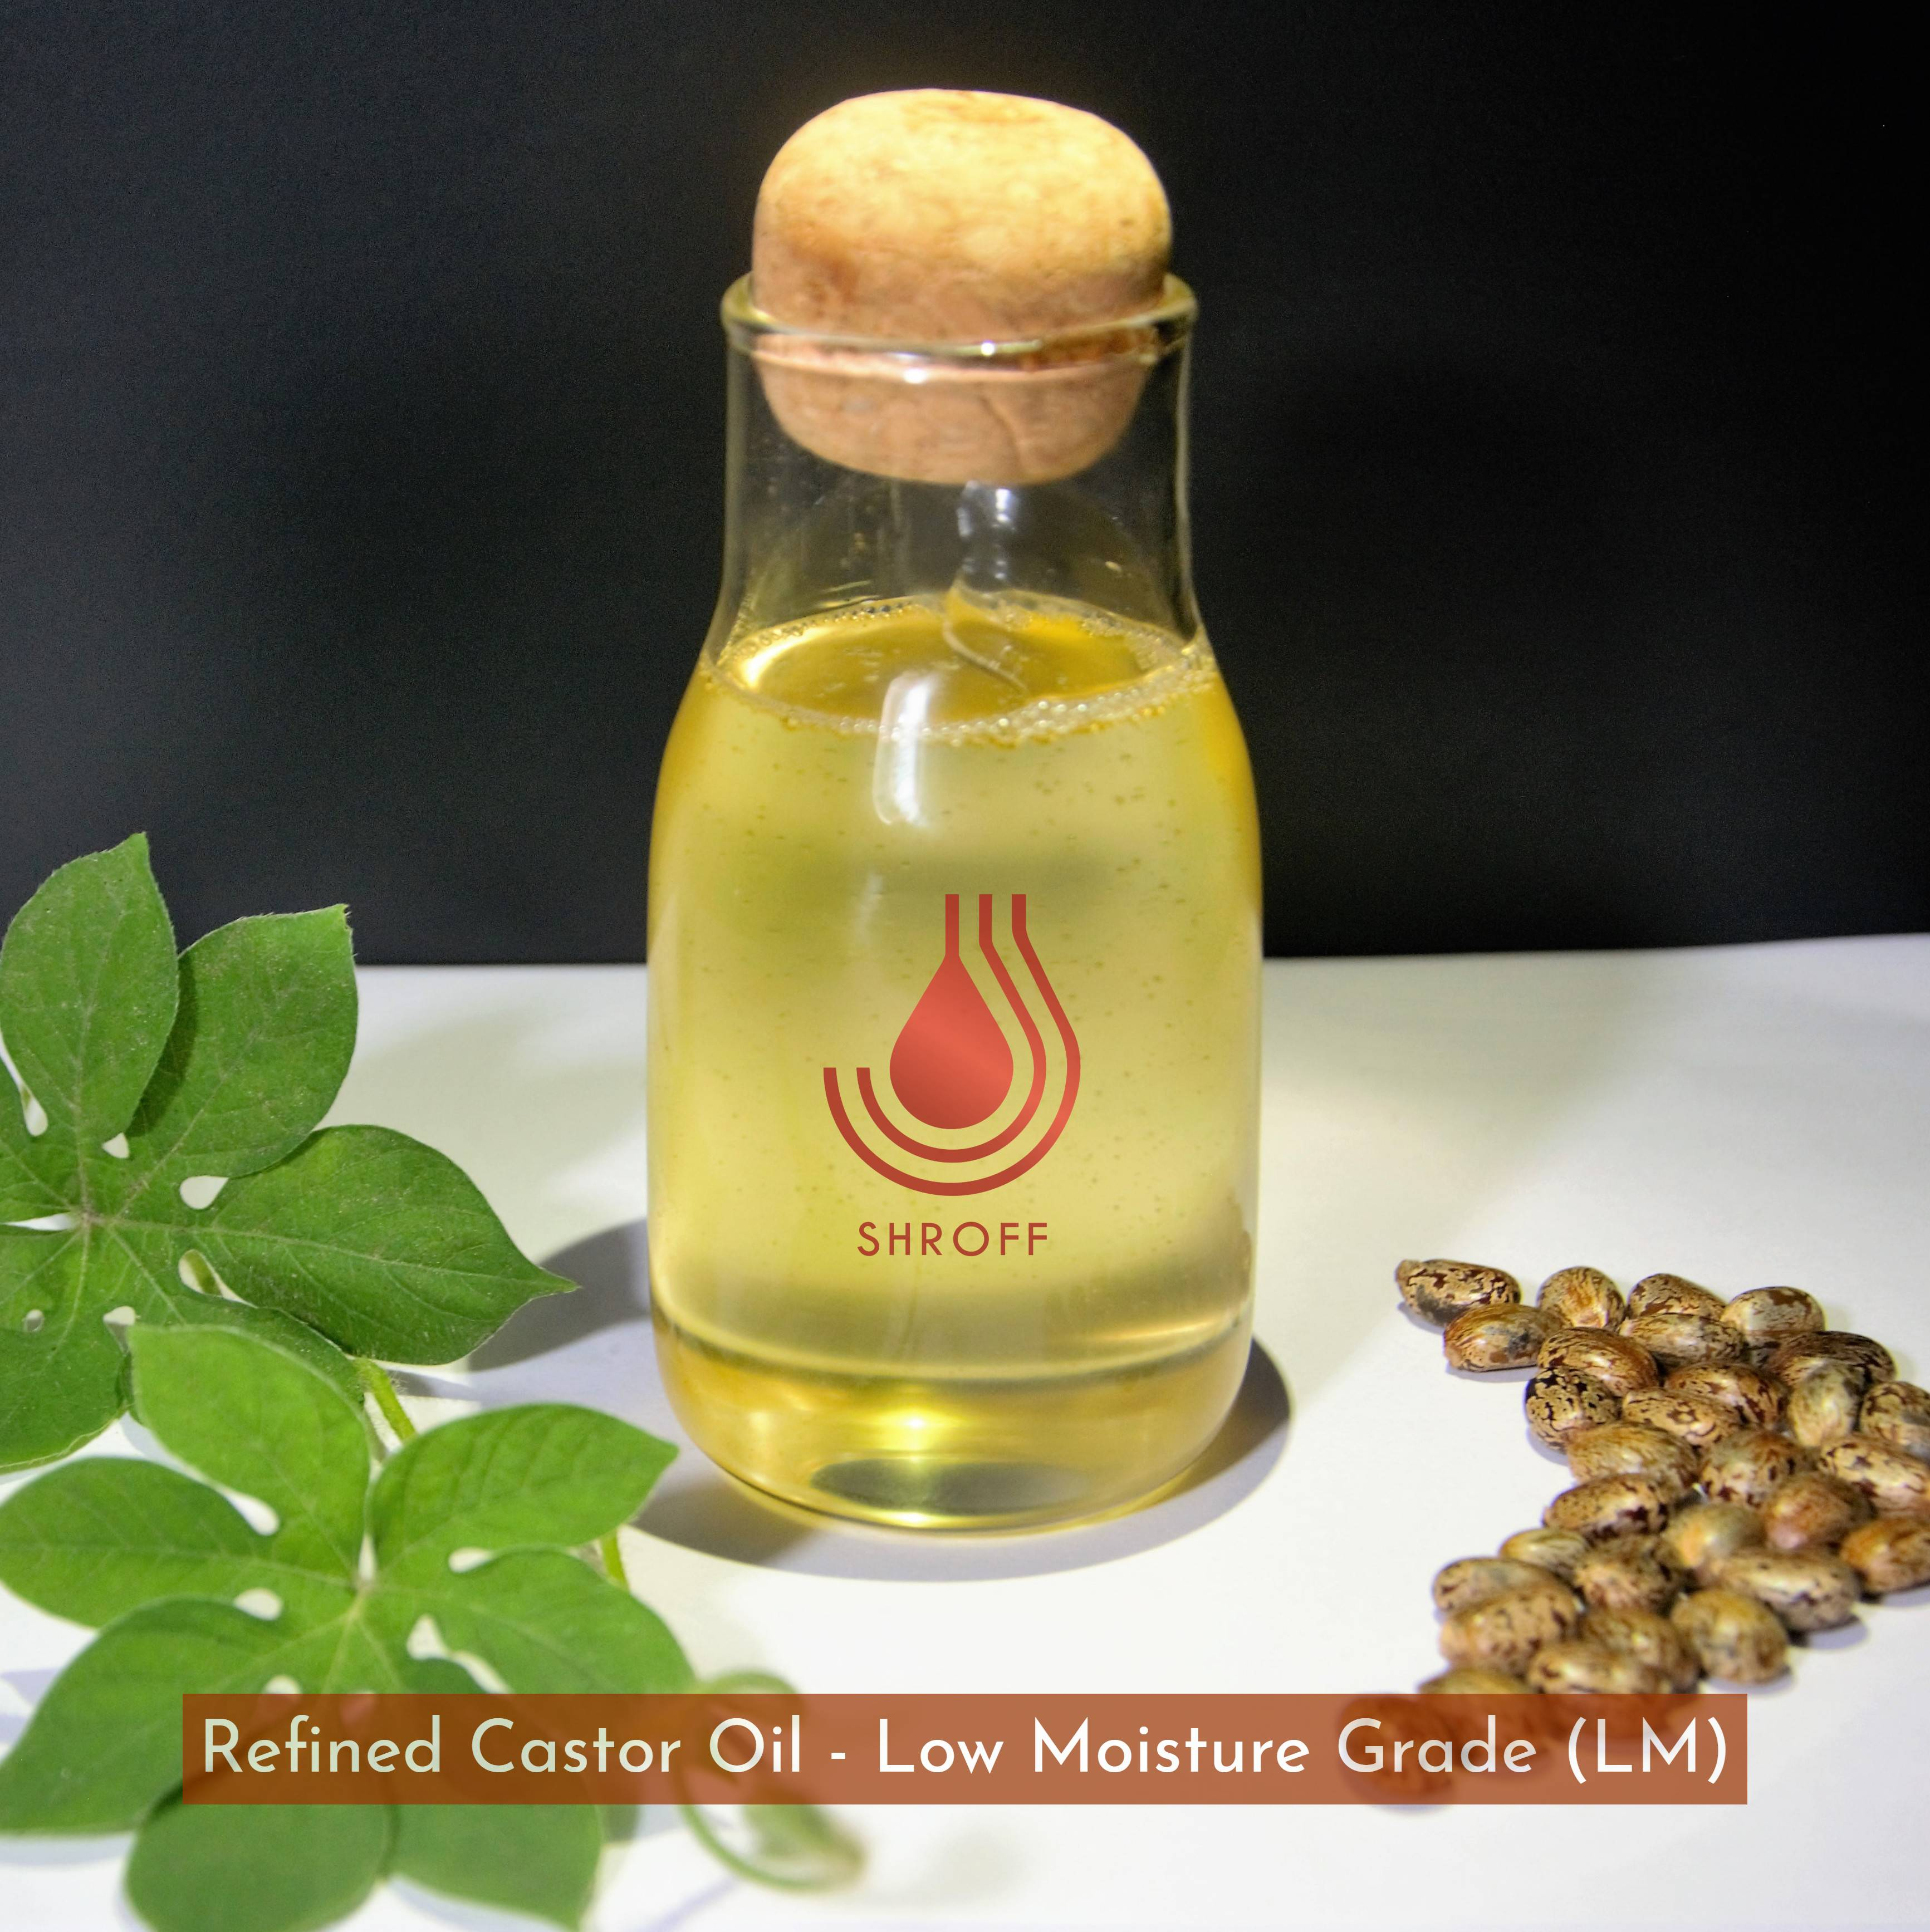 Refined Castor Oil - Low Moisture Grade (LM)